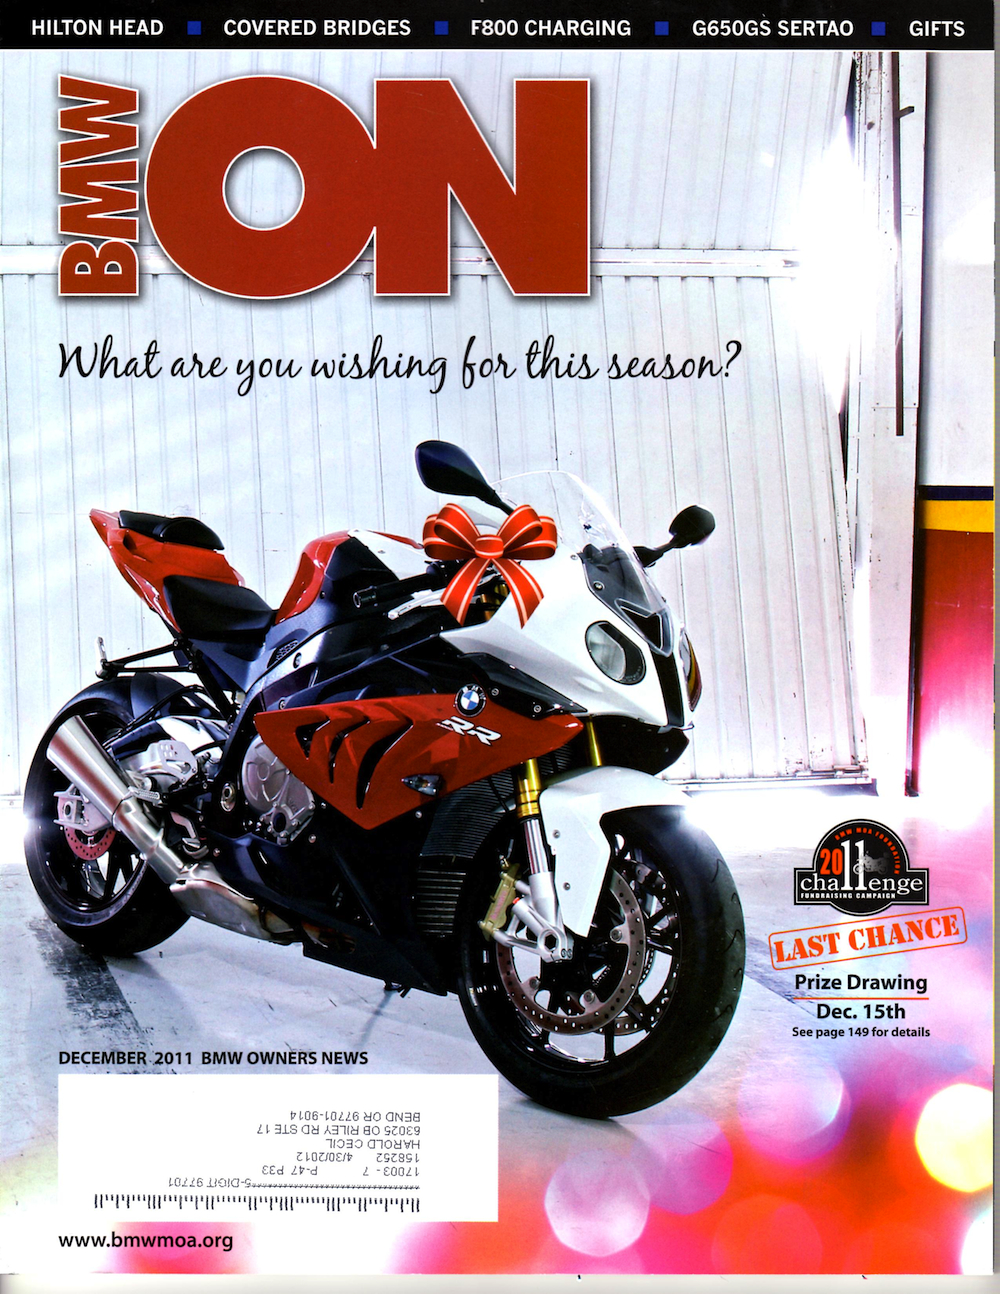 Giant Loop review: BMW ON Owner's News Magazine features Diablo Tank Bag, Fandango Tank Bag | Go Light. Go Fast. Go Far. Adventure Proof Packing Systems + ...